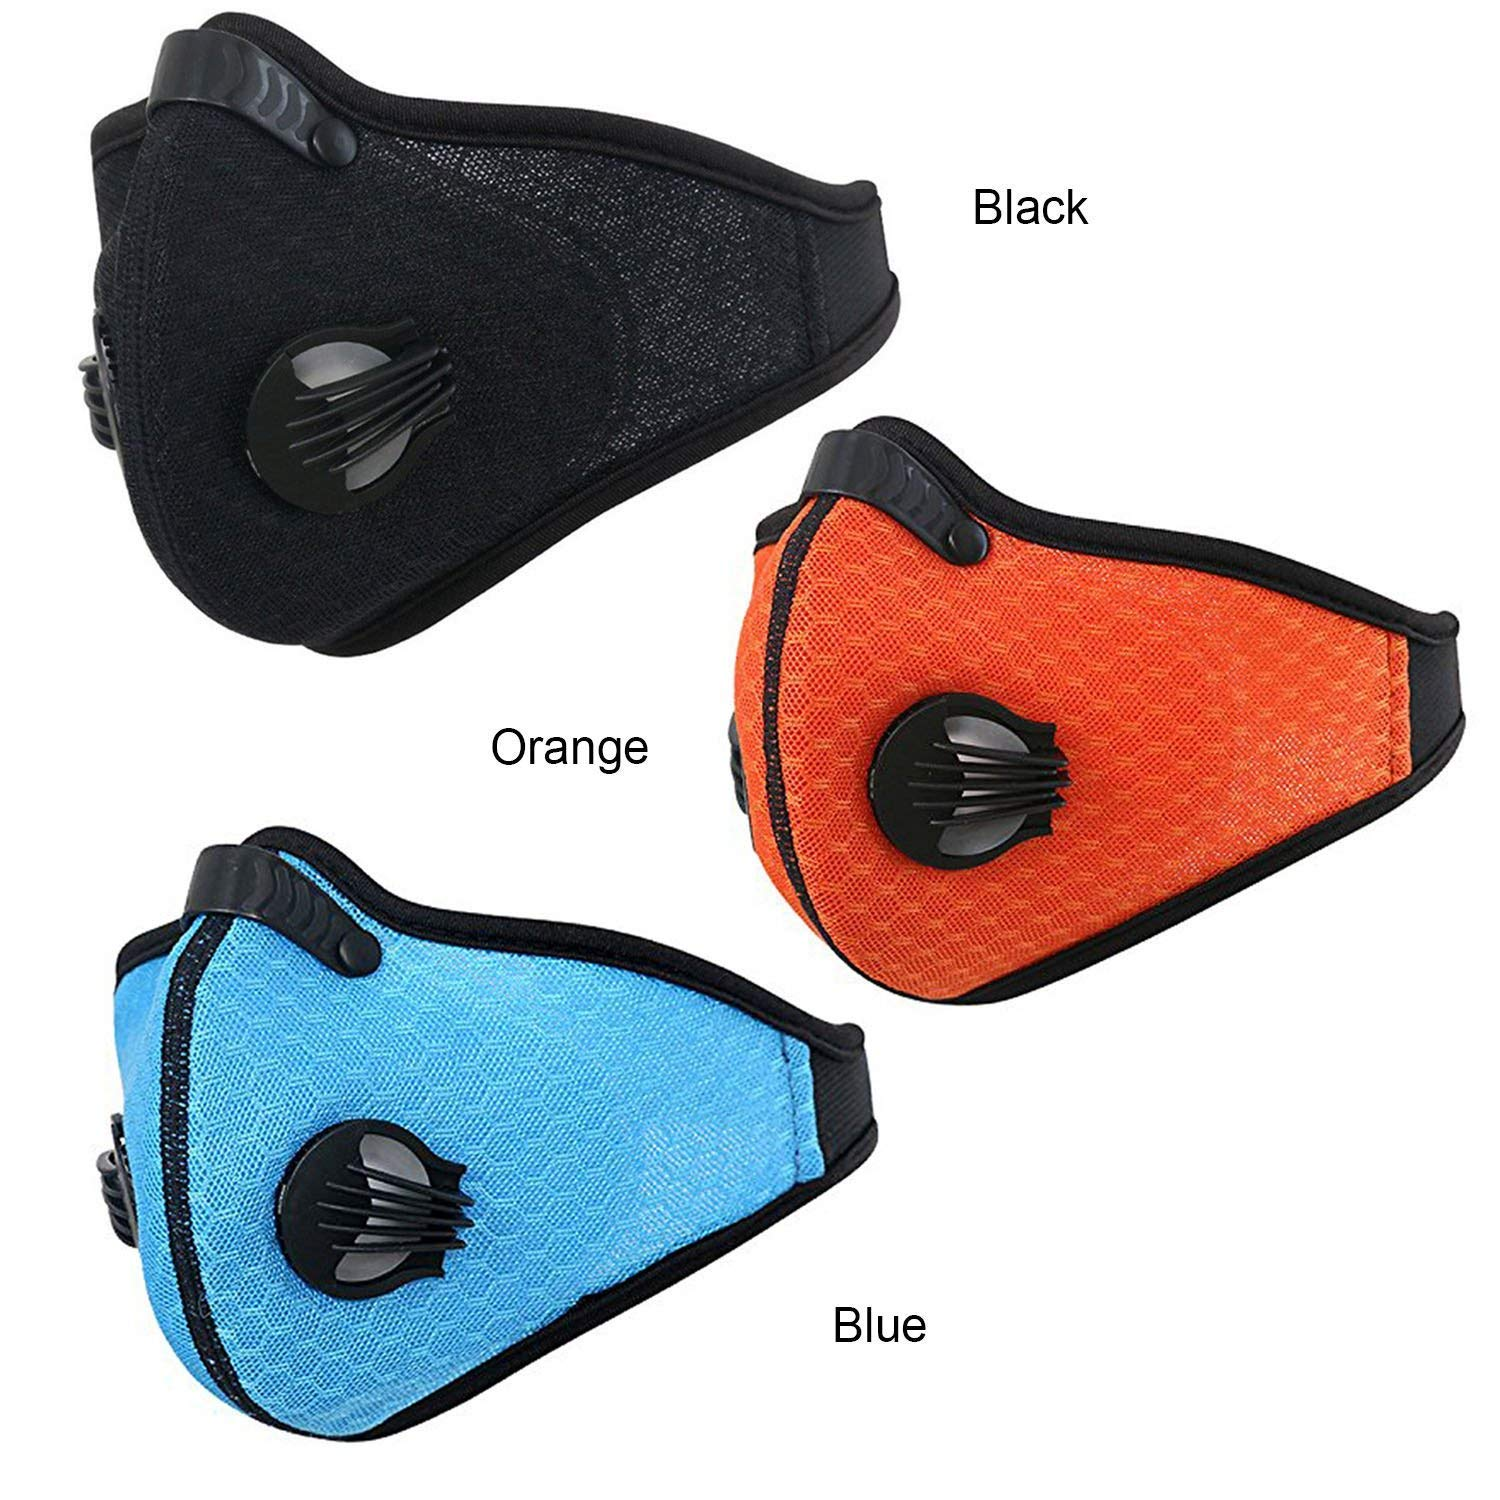 Activated Carbon Dustproof/Dust Mask - Filter Cotton Sheet and Valves for Exhaust Gas, Pollen Allergy, PM2.5, Running, Cycling, Outdoor Activities (Black+Orange) by Tunity (Image #4)